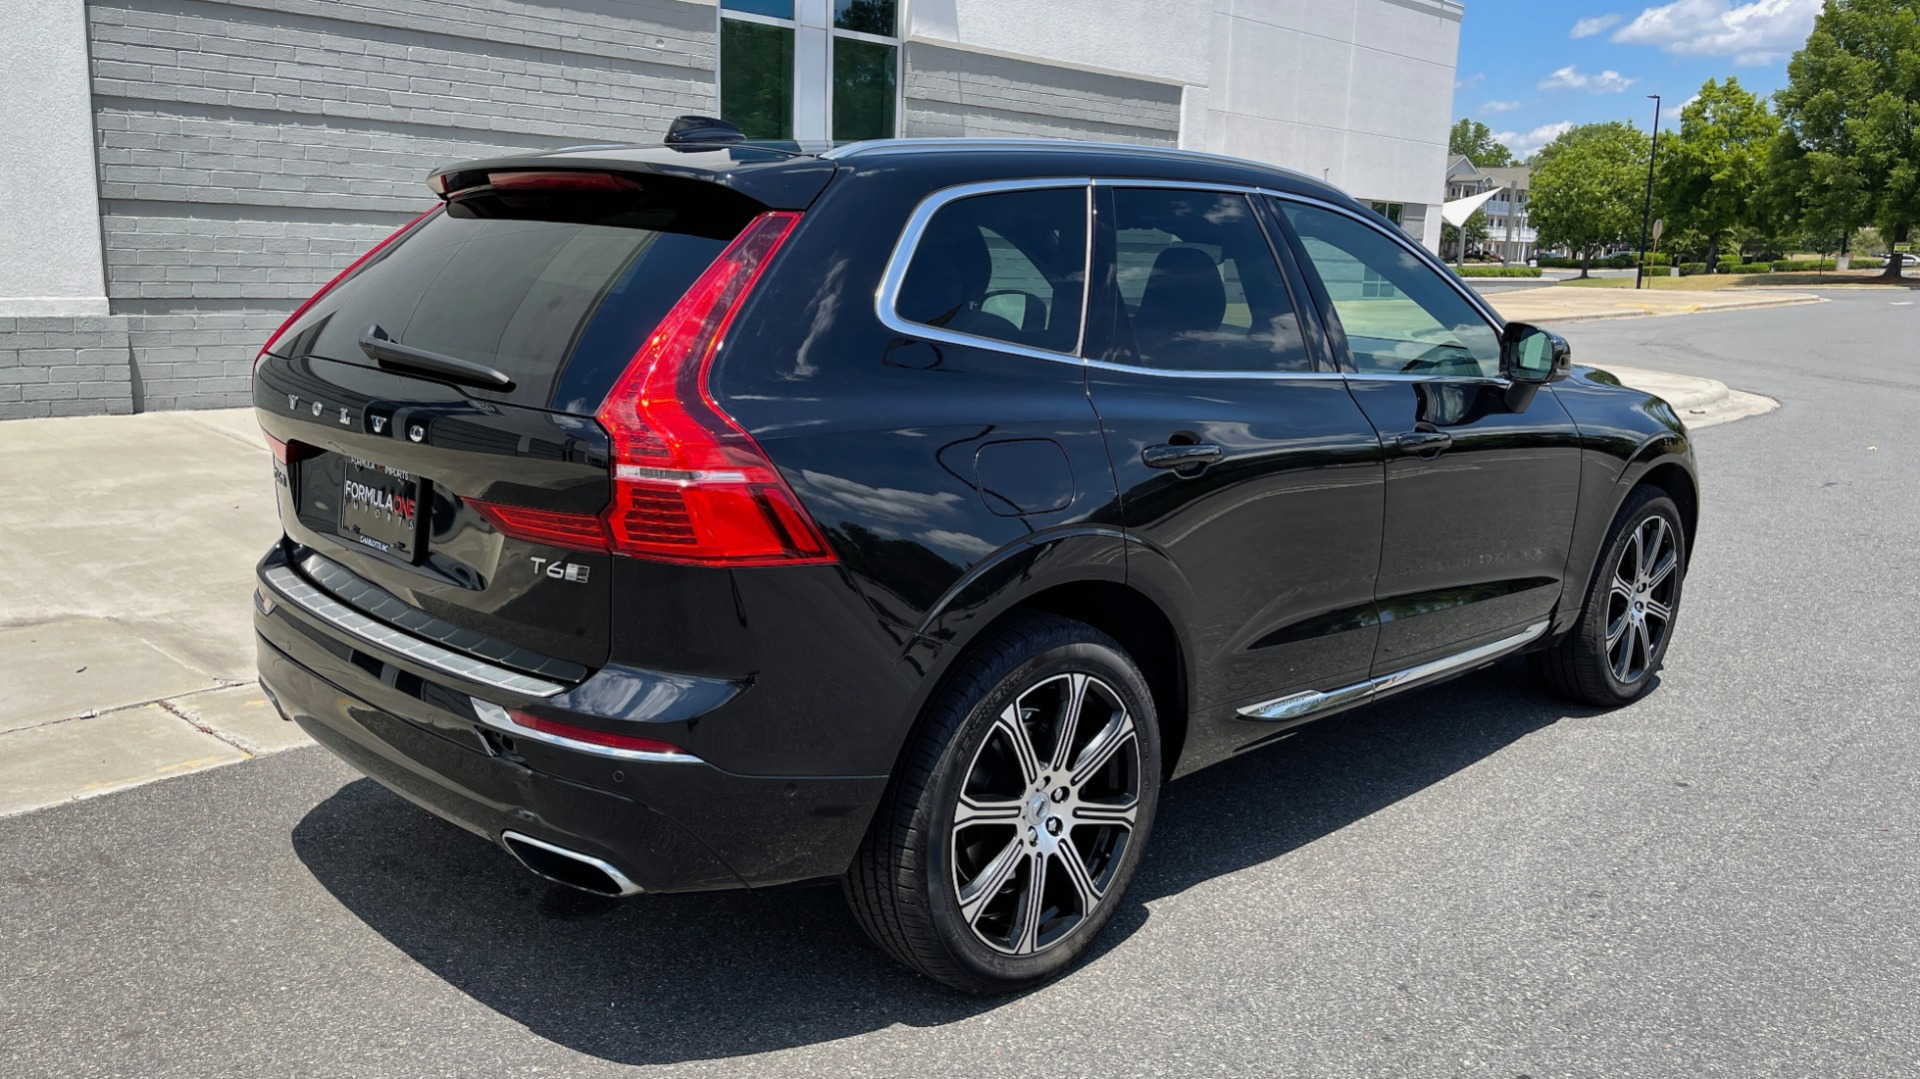 Used 2018 Volvo XC60 INSCRIPTION 2.0L TURBO SUV / AWD / NAV / SUNROOF / REARVIEW for sale $38,795 at Formula Imports in Charlotte NC 28227 3